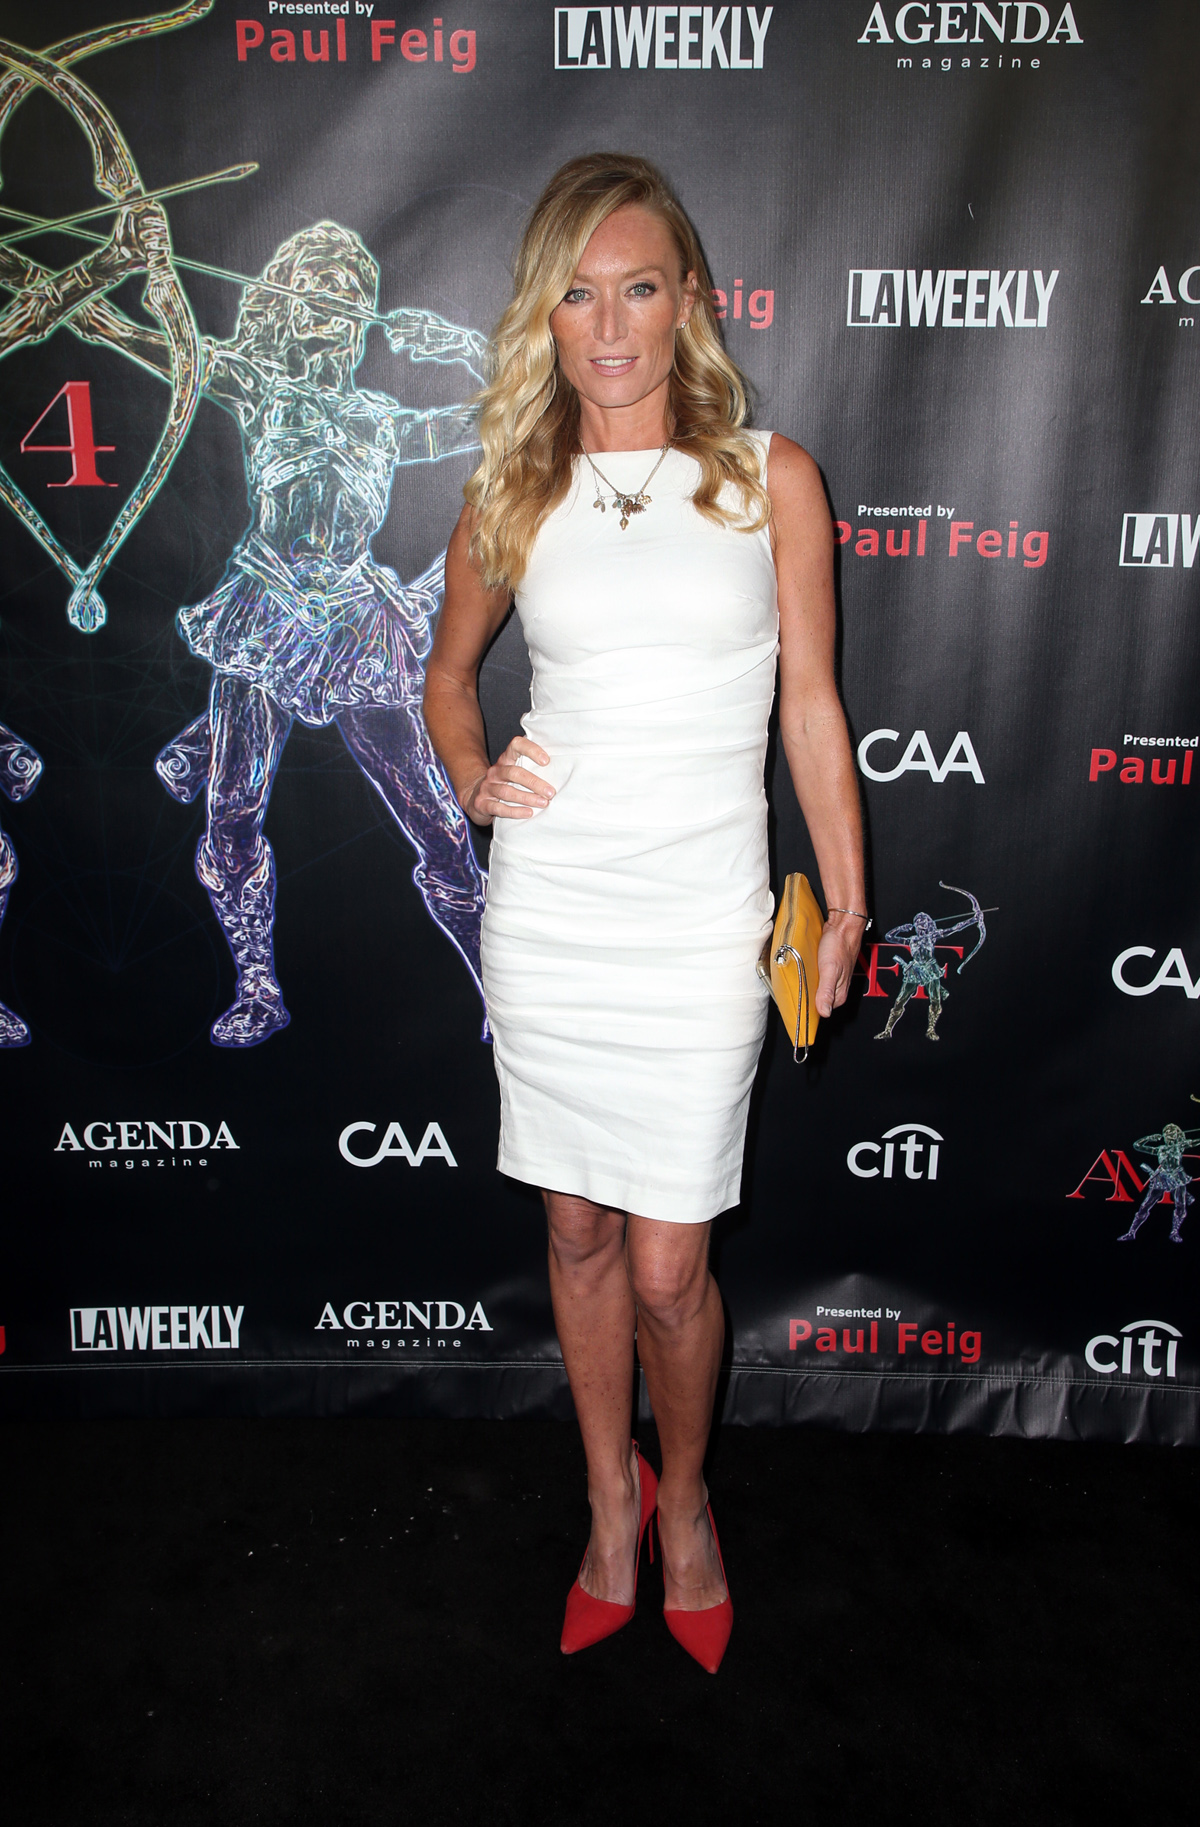 BEVERLY HILLS, CA - APRIL 26: Victoria Smurfit, at the 2018 Artemis Awards Gala at the Ahrya Fine Arts Theater in Beverly Hills, California on April 26, 2018. Credit: Faye Sadou/MediaPunch